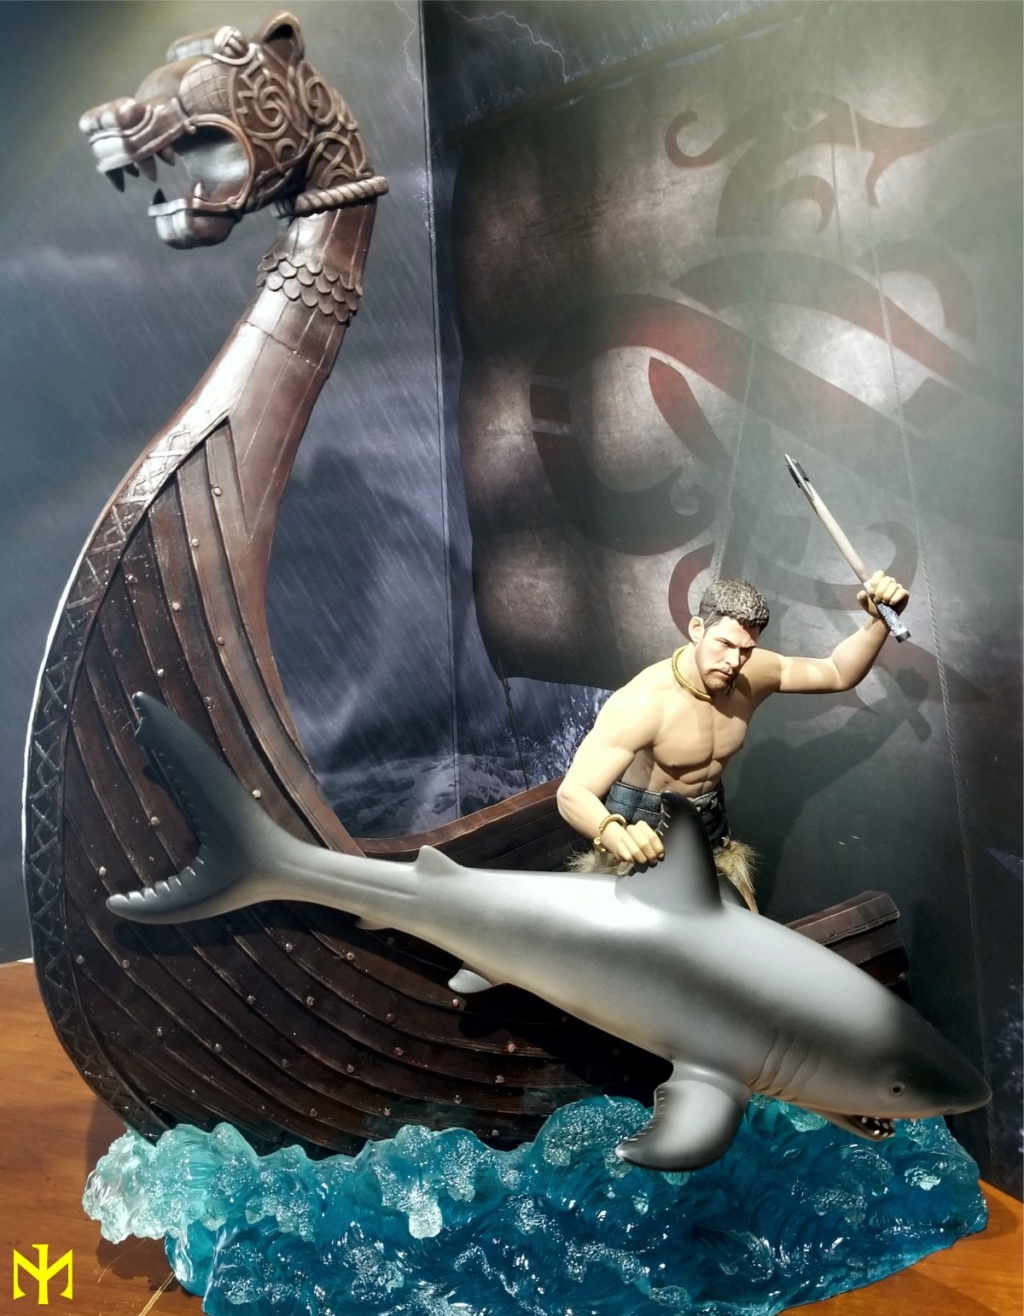 vikings - Vikings Vanquisher Viking Ship Diorama Coomodel Review Viking40